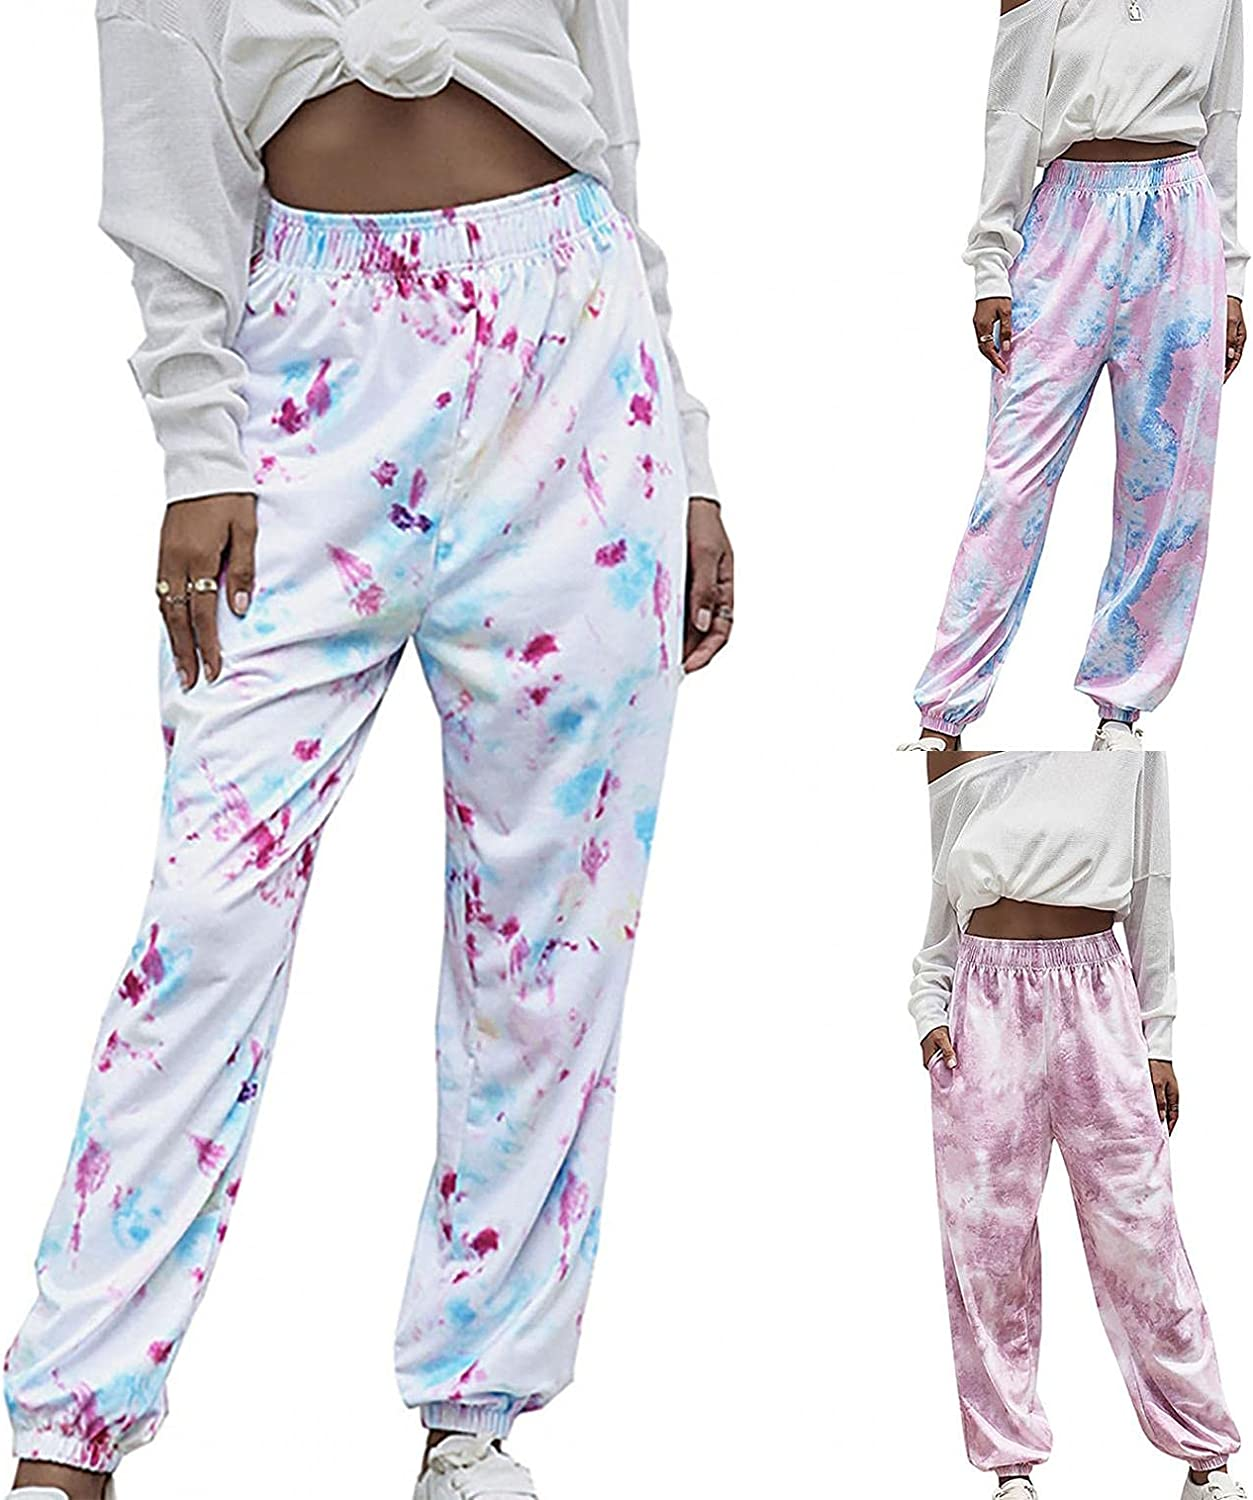 Lovor Women's Cinch Bottom Sweatpants with Pockets Tie Dye High Waisted Sweats Athletic Jogger Trousers Sports Pants